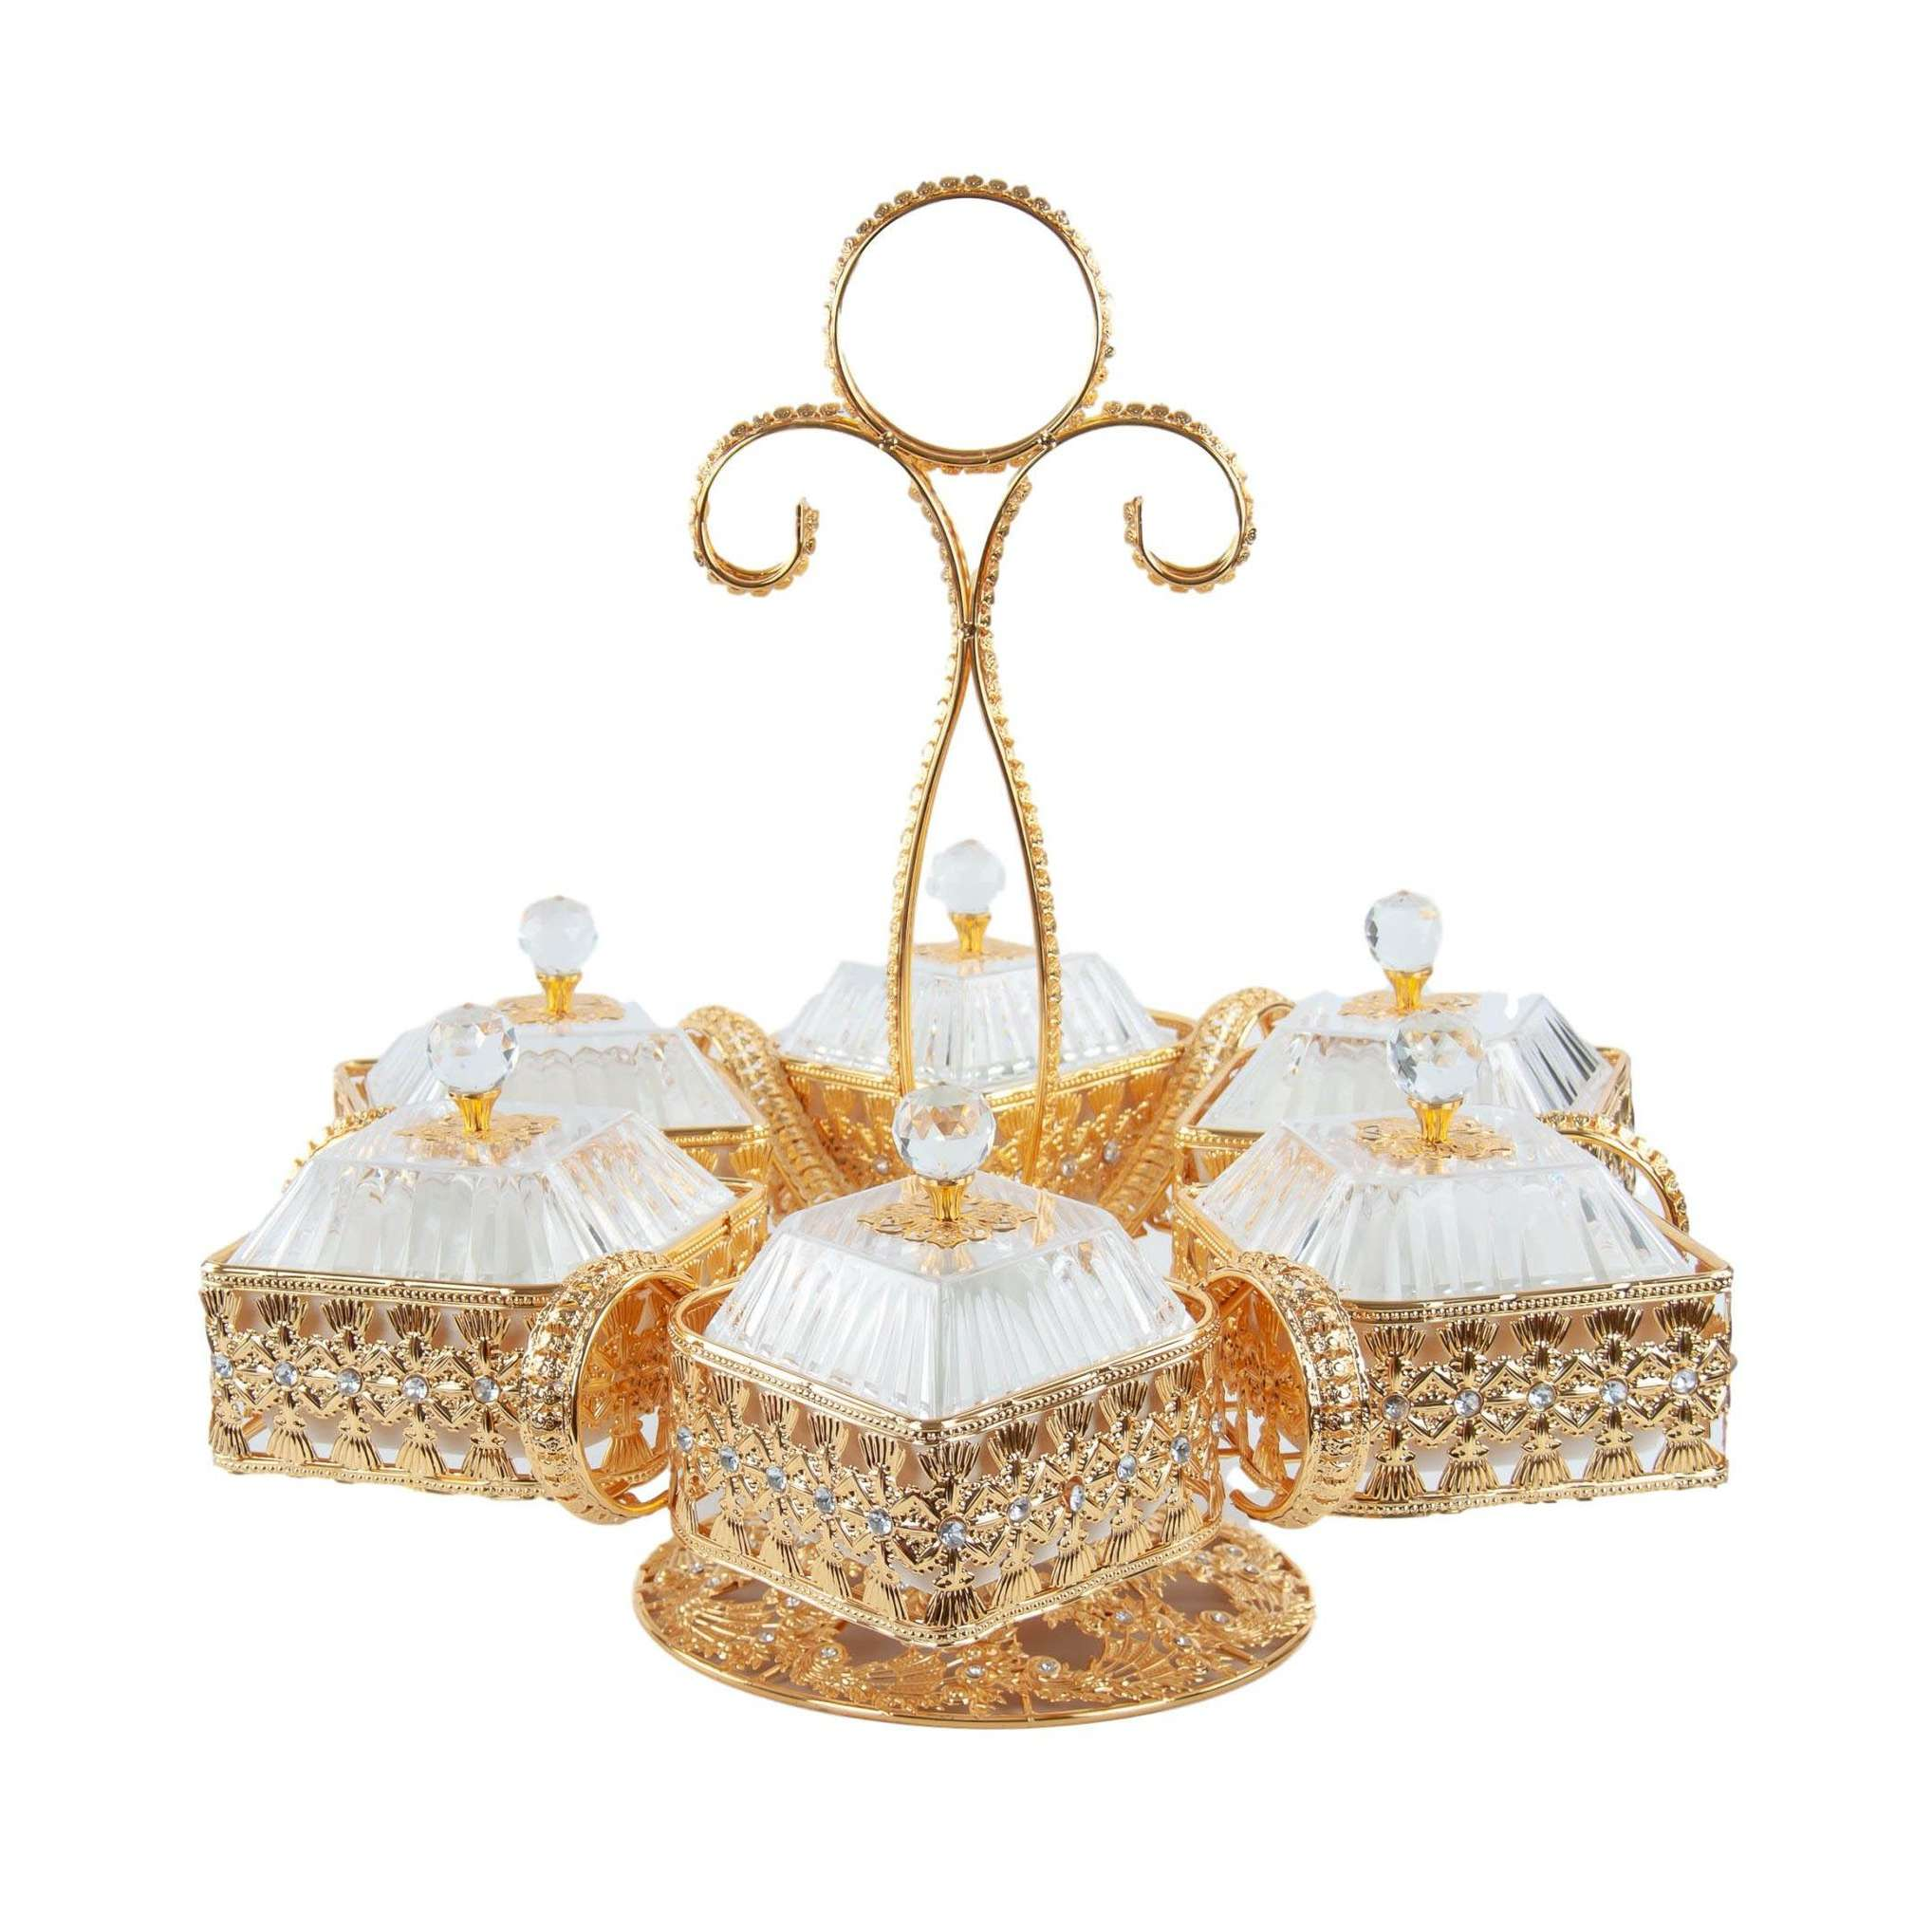 Ornate Rotating Party Tray Beautiful Glass And Gold Embroidery Tray 7 Piece 55cm